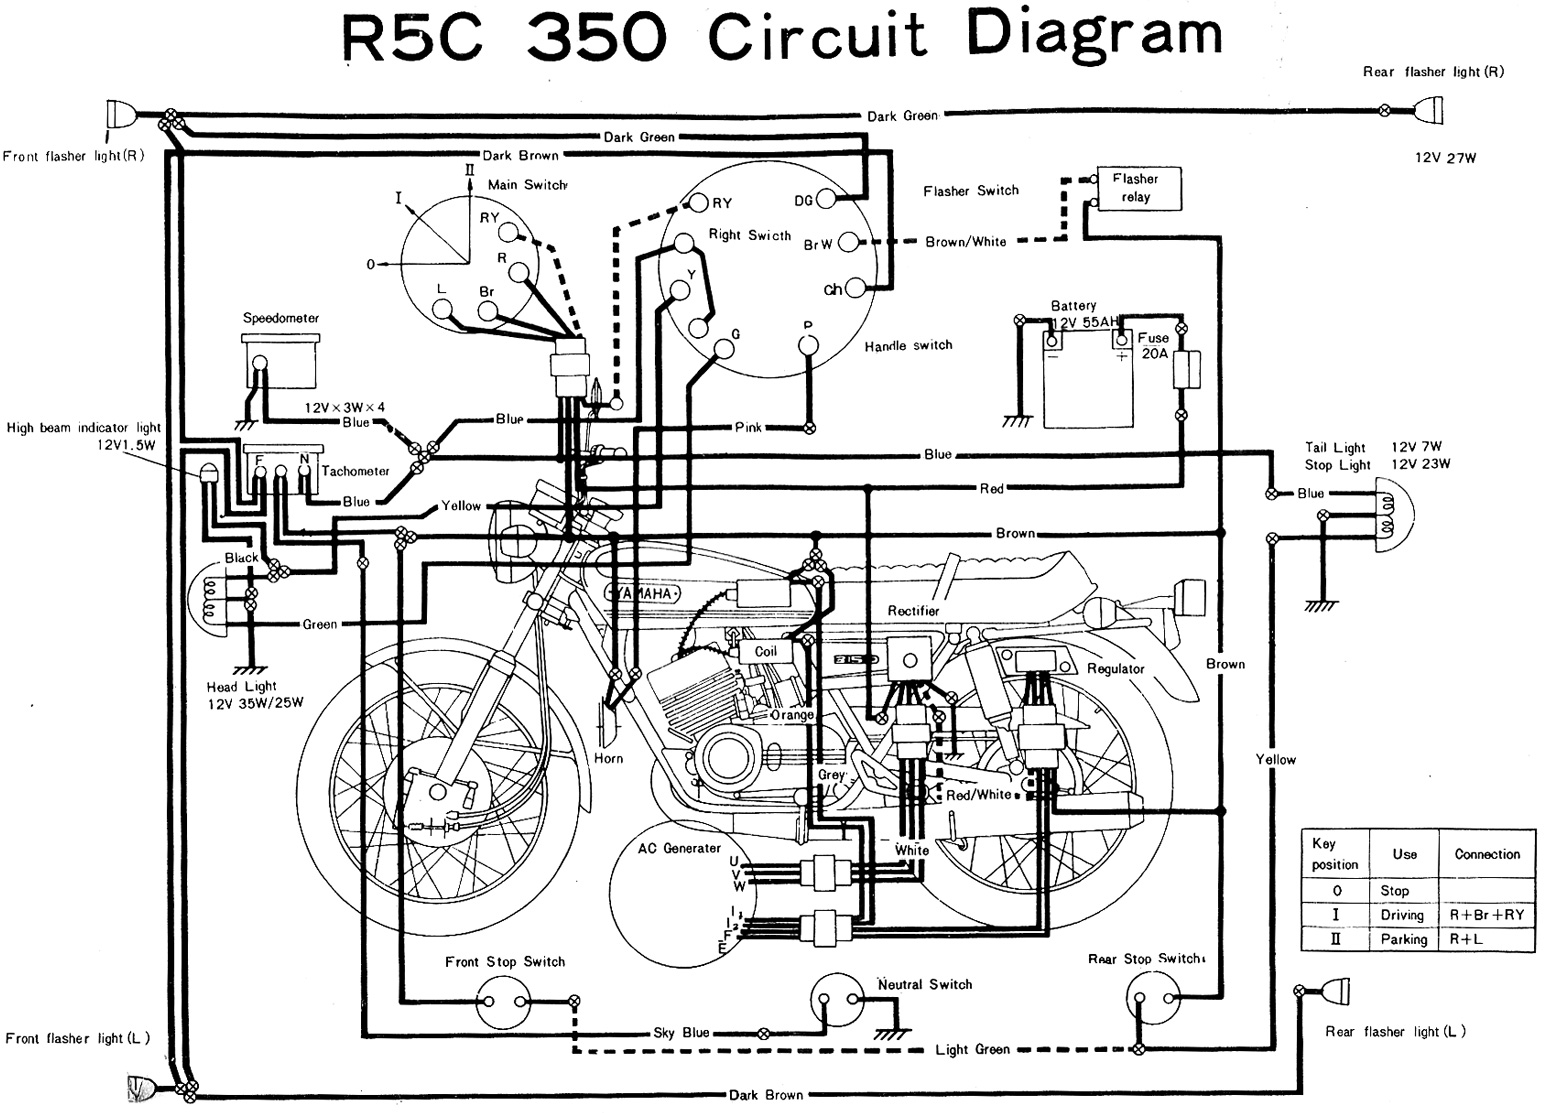 Yamaha R5C 350 Electrical Wiring Diagram1 motorcycle wiring diagrams motorcycle wiring harness diagram at cos-gaming.co